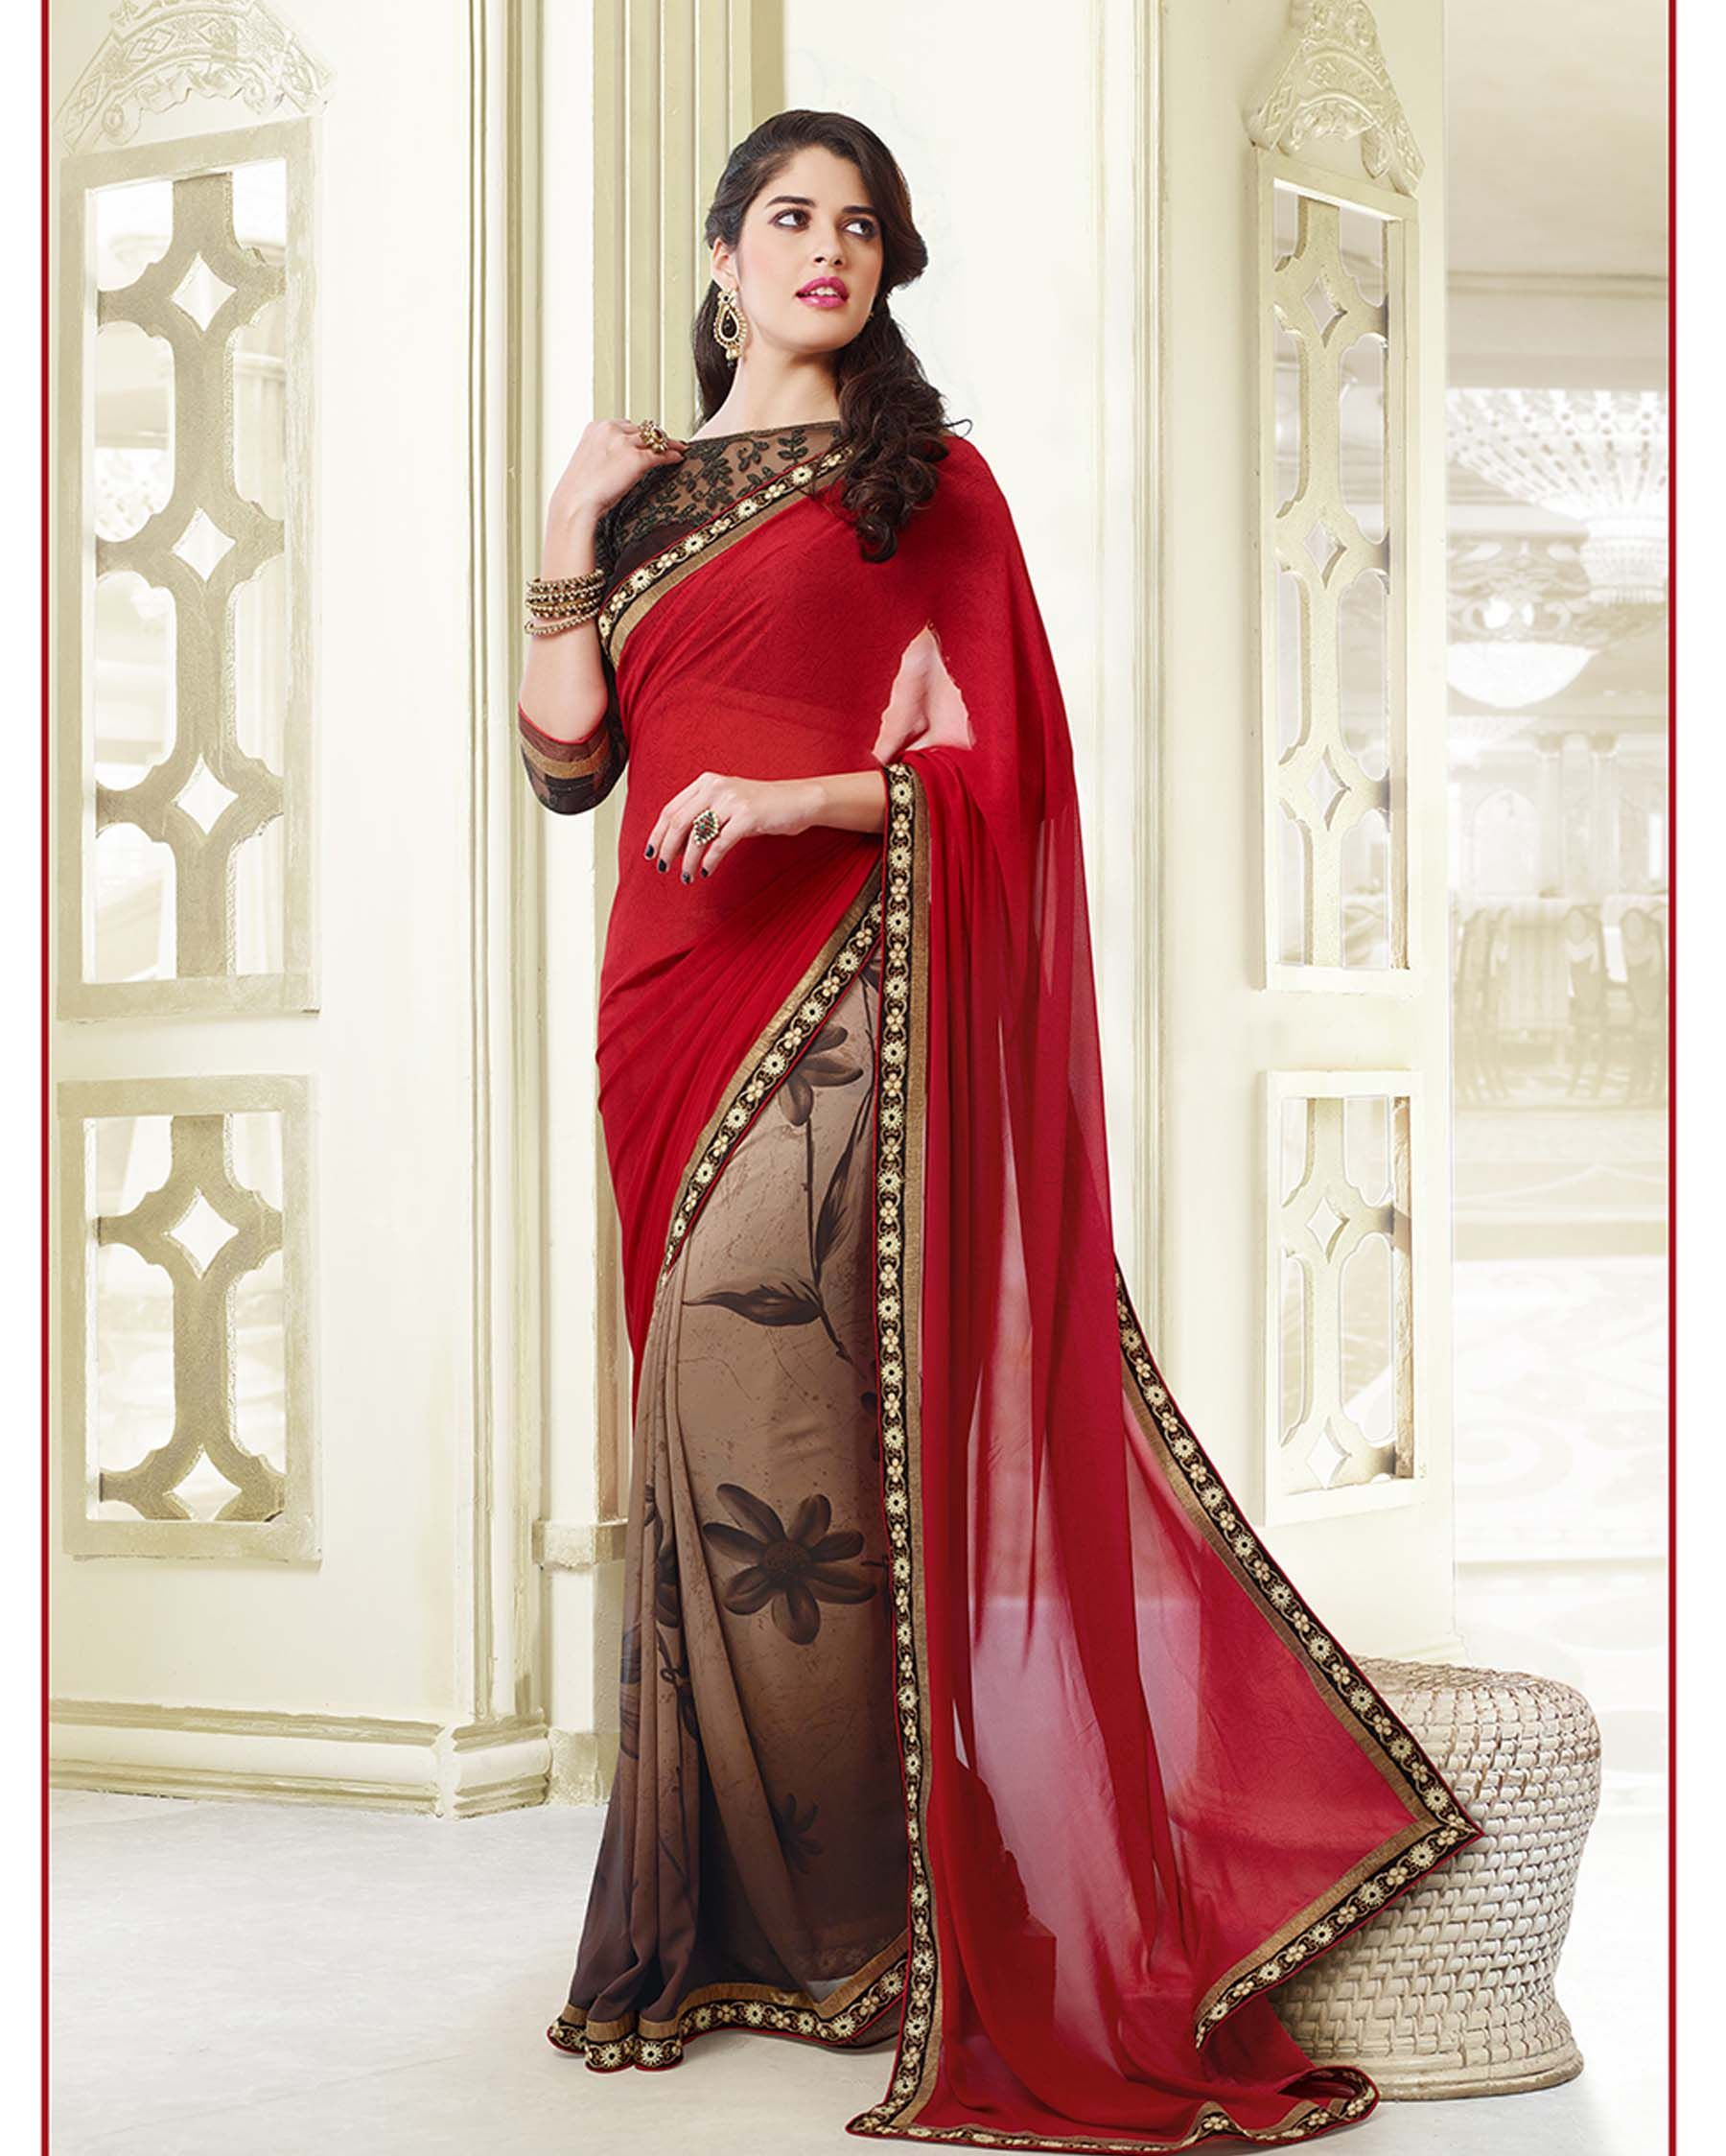 Free Shipping Maroon Sari Traditional Vintage Printed Georgette Indian culture Women Clothing Sari